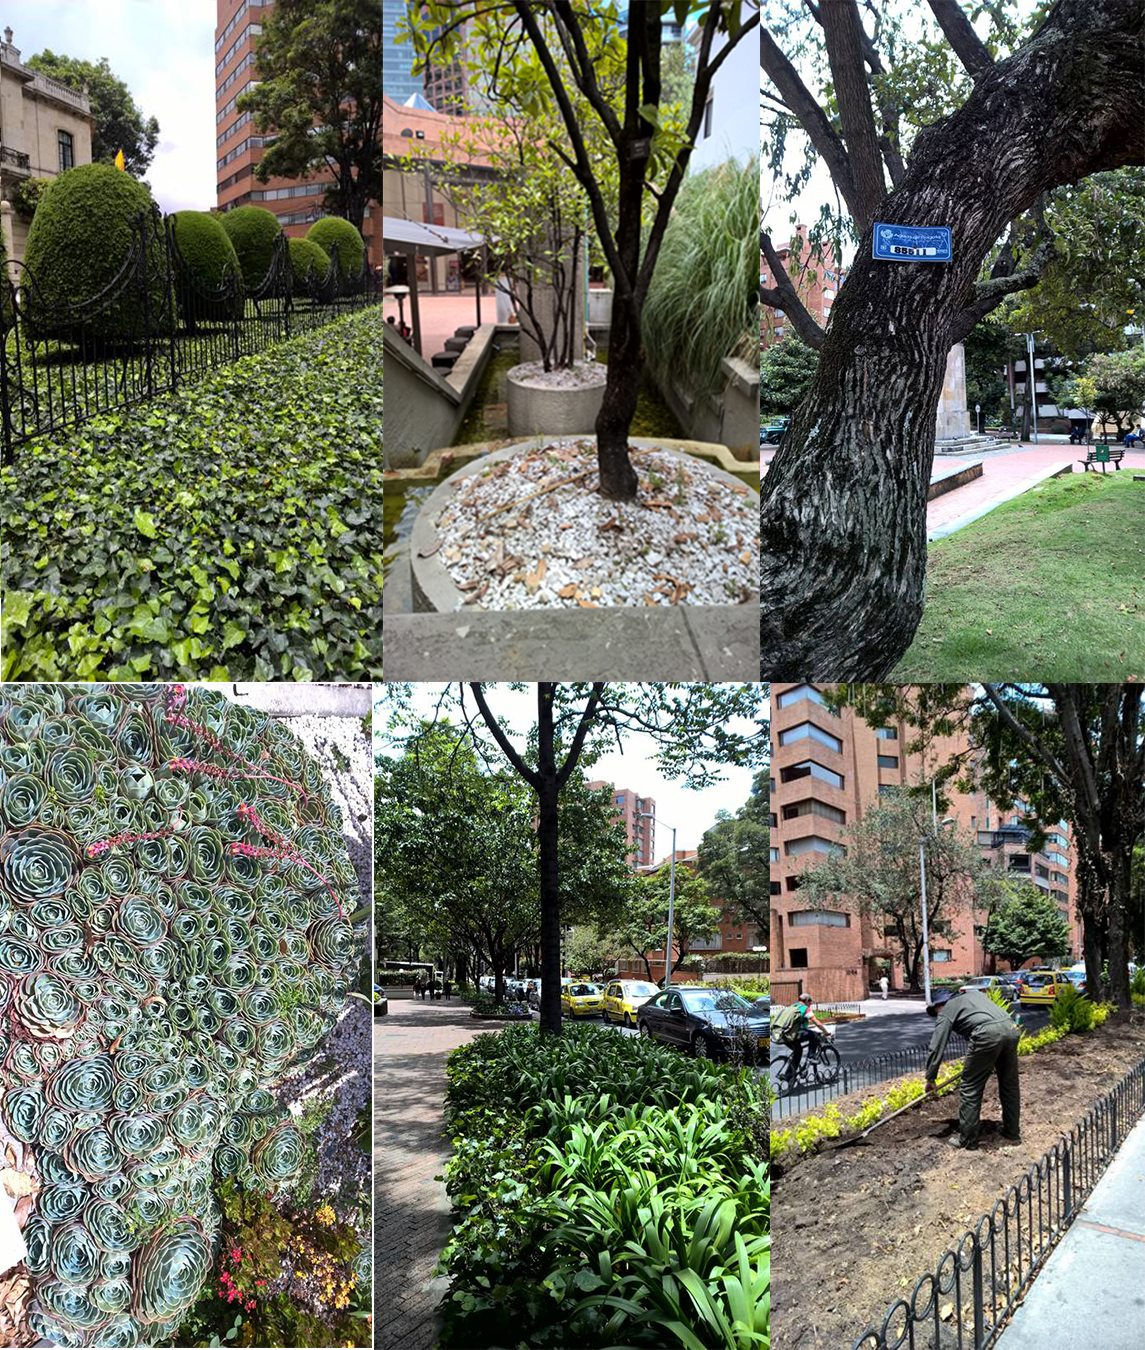 Some examples of the diverse green Infrastructure in Bogotá city. Photos: Ana Faggi